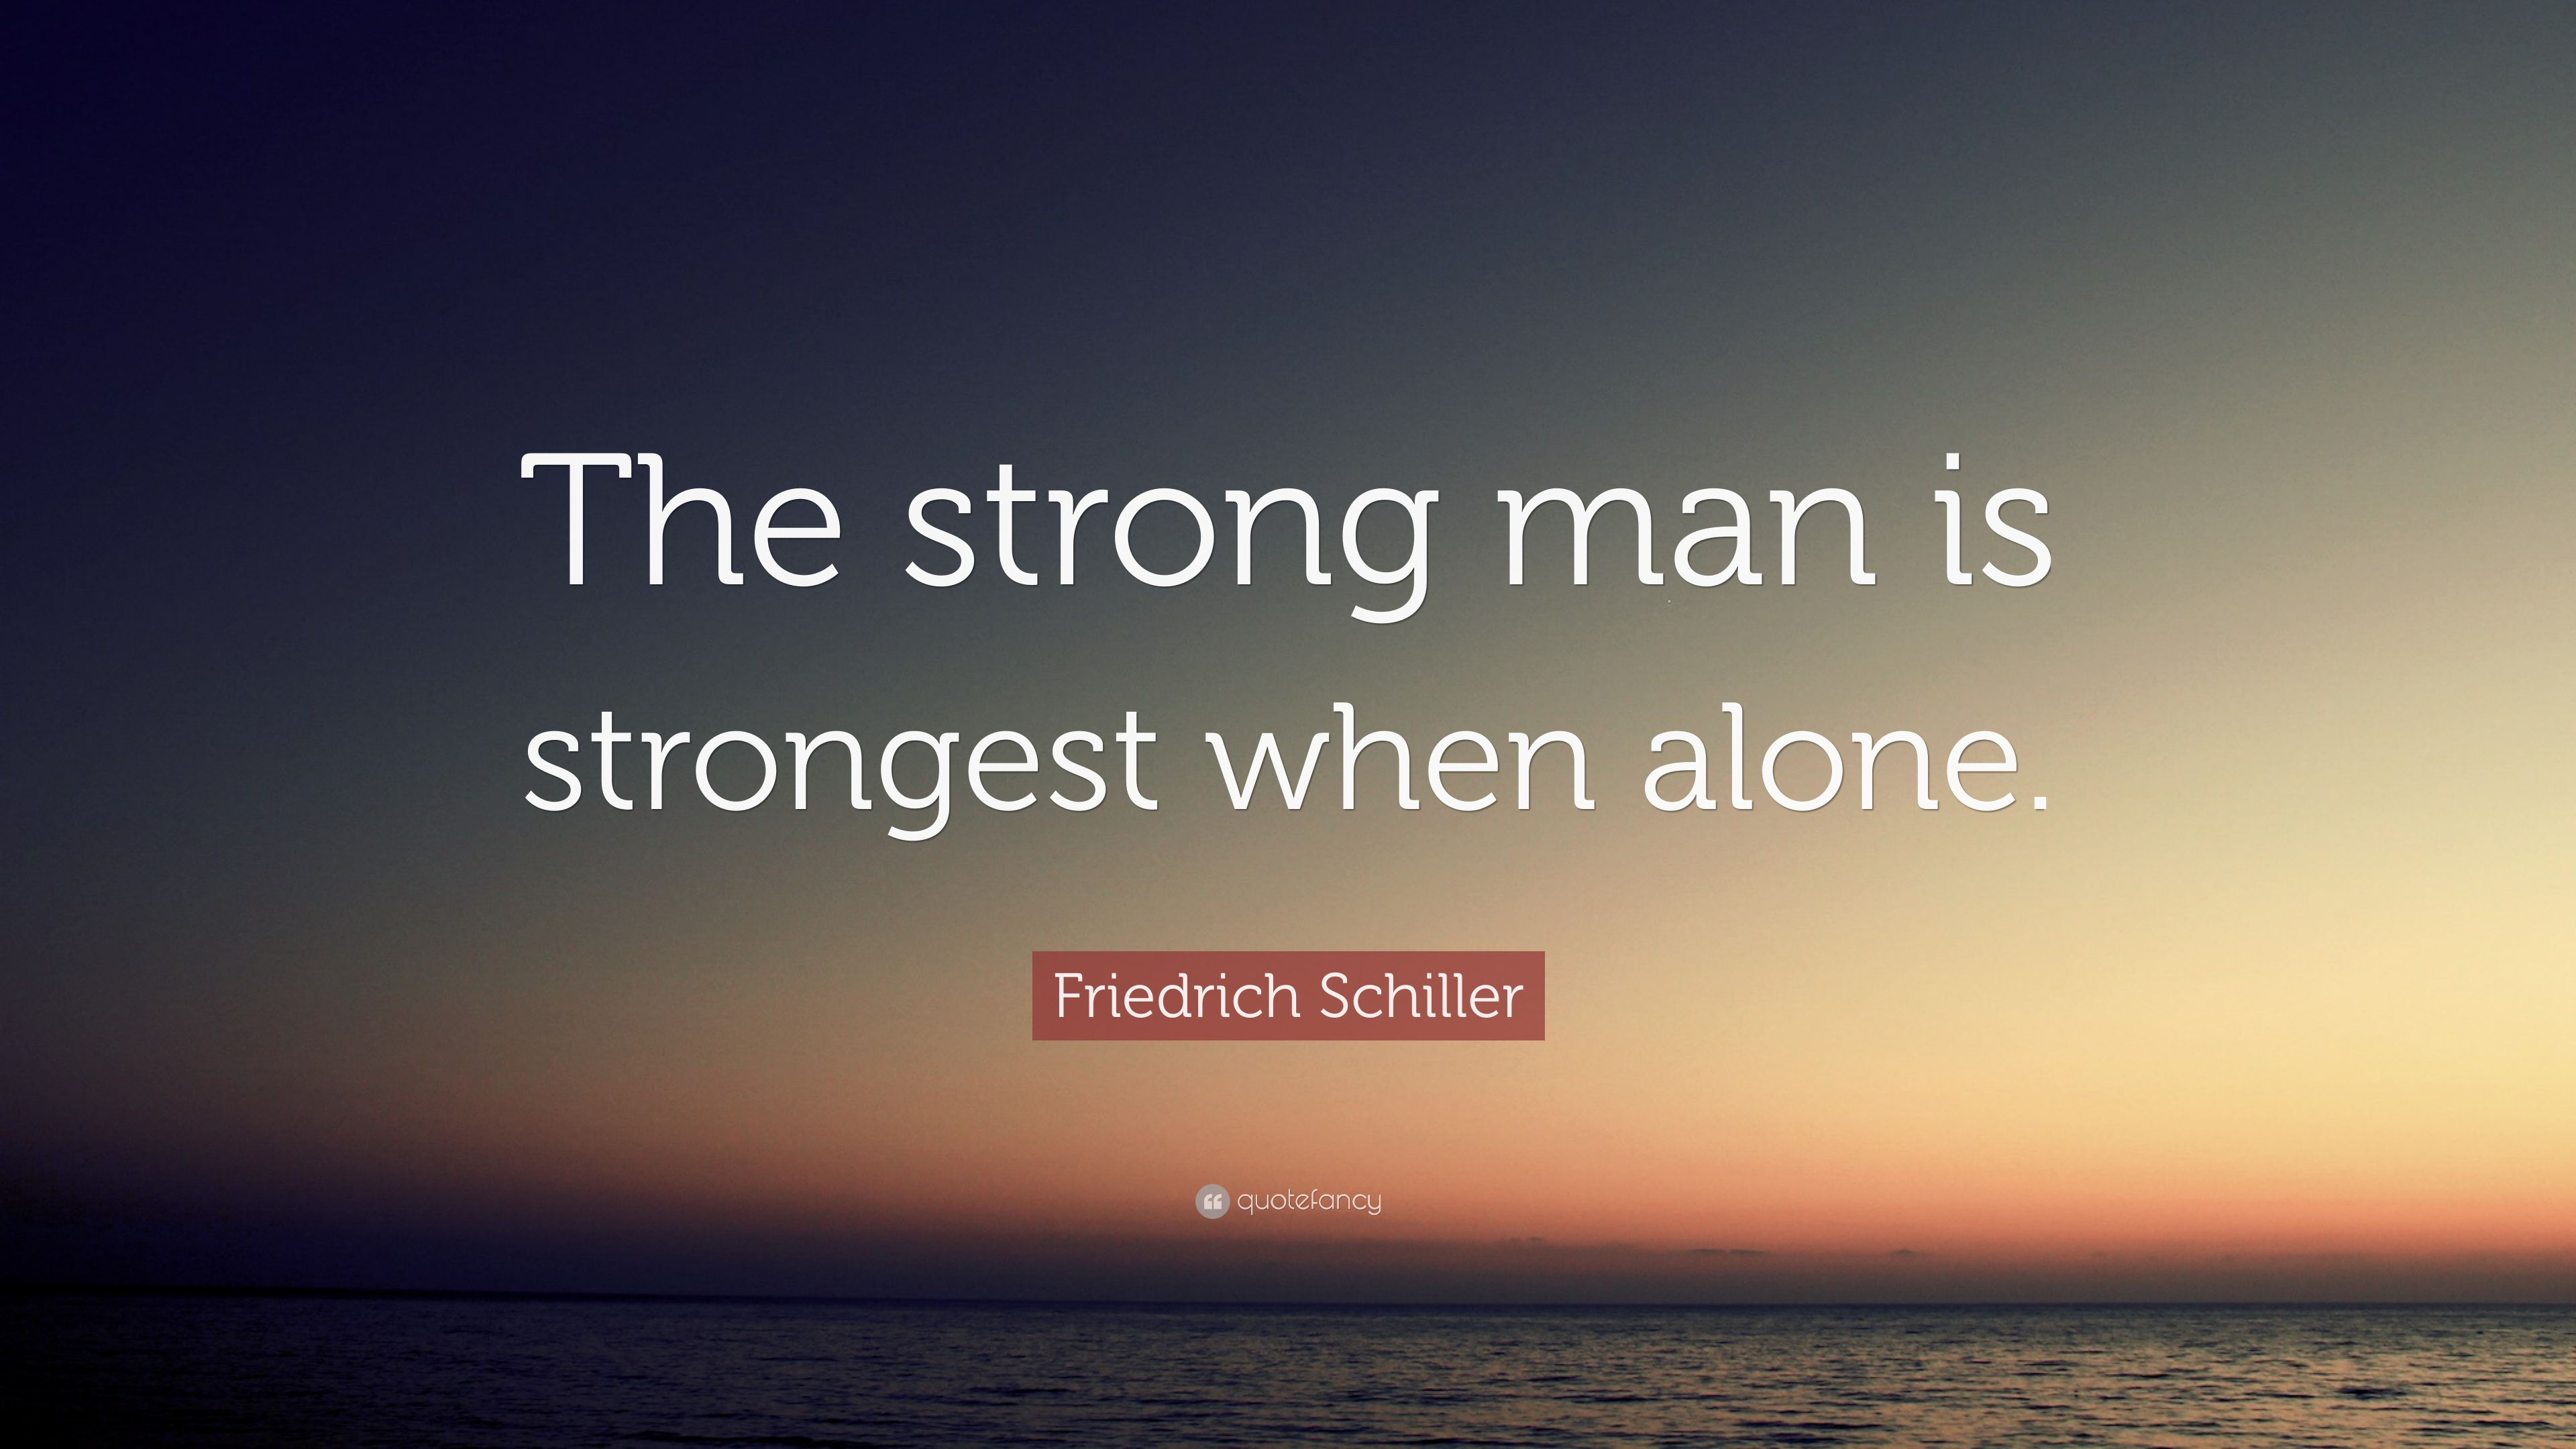 Friedrich Schiller Quote The Strong Man Is Strongest When Alone